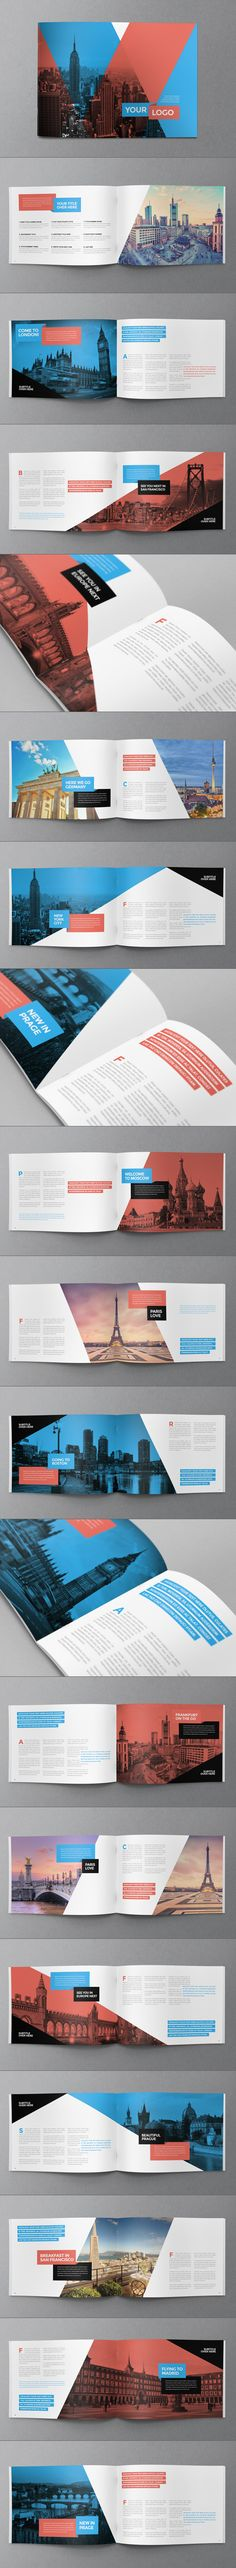 Buy Modern Travel Brochure by AbraDesign on GraphicRiver. MODERN TRAVEL BROCHURE This brochure is an ideal way to showcase your travel business in an original way. Web Design, Layout Design, Print Layout, Book Design, Brochure Indesign, Brochure Layout, Brochure Template, Brochure Ideas, Portfolio Covers